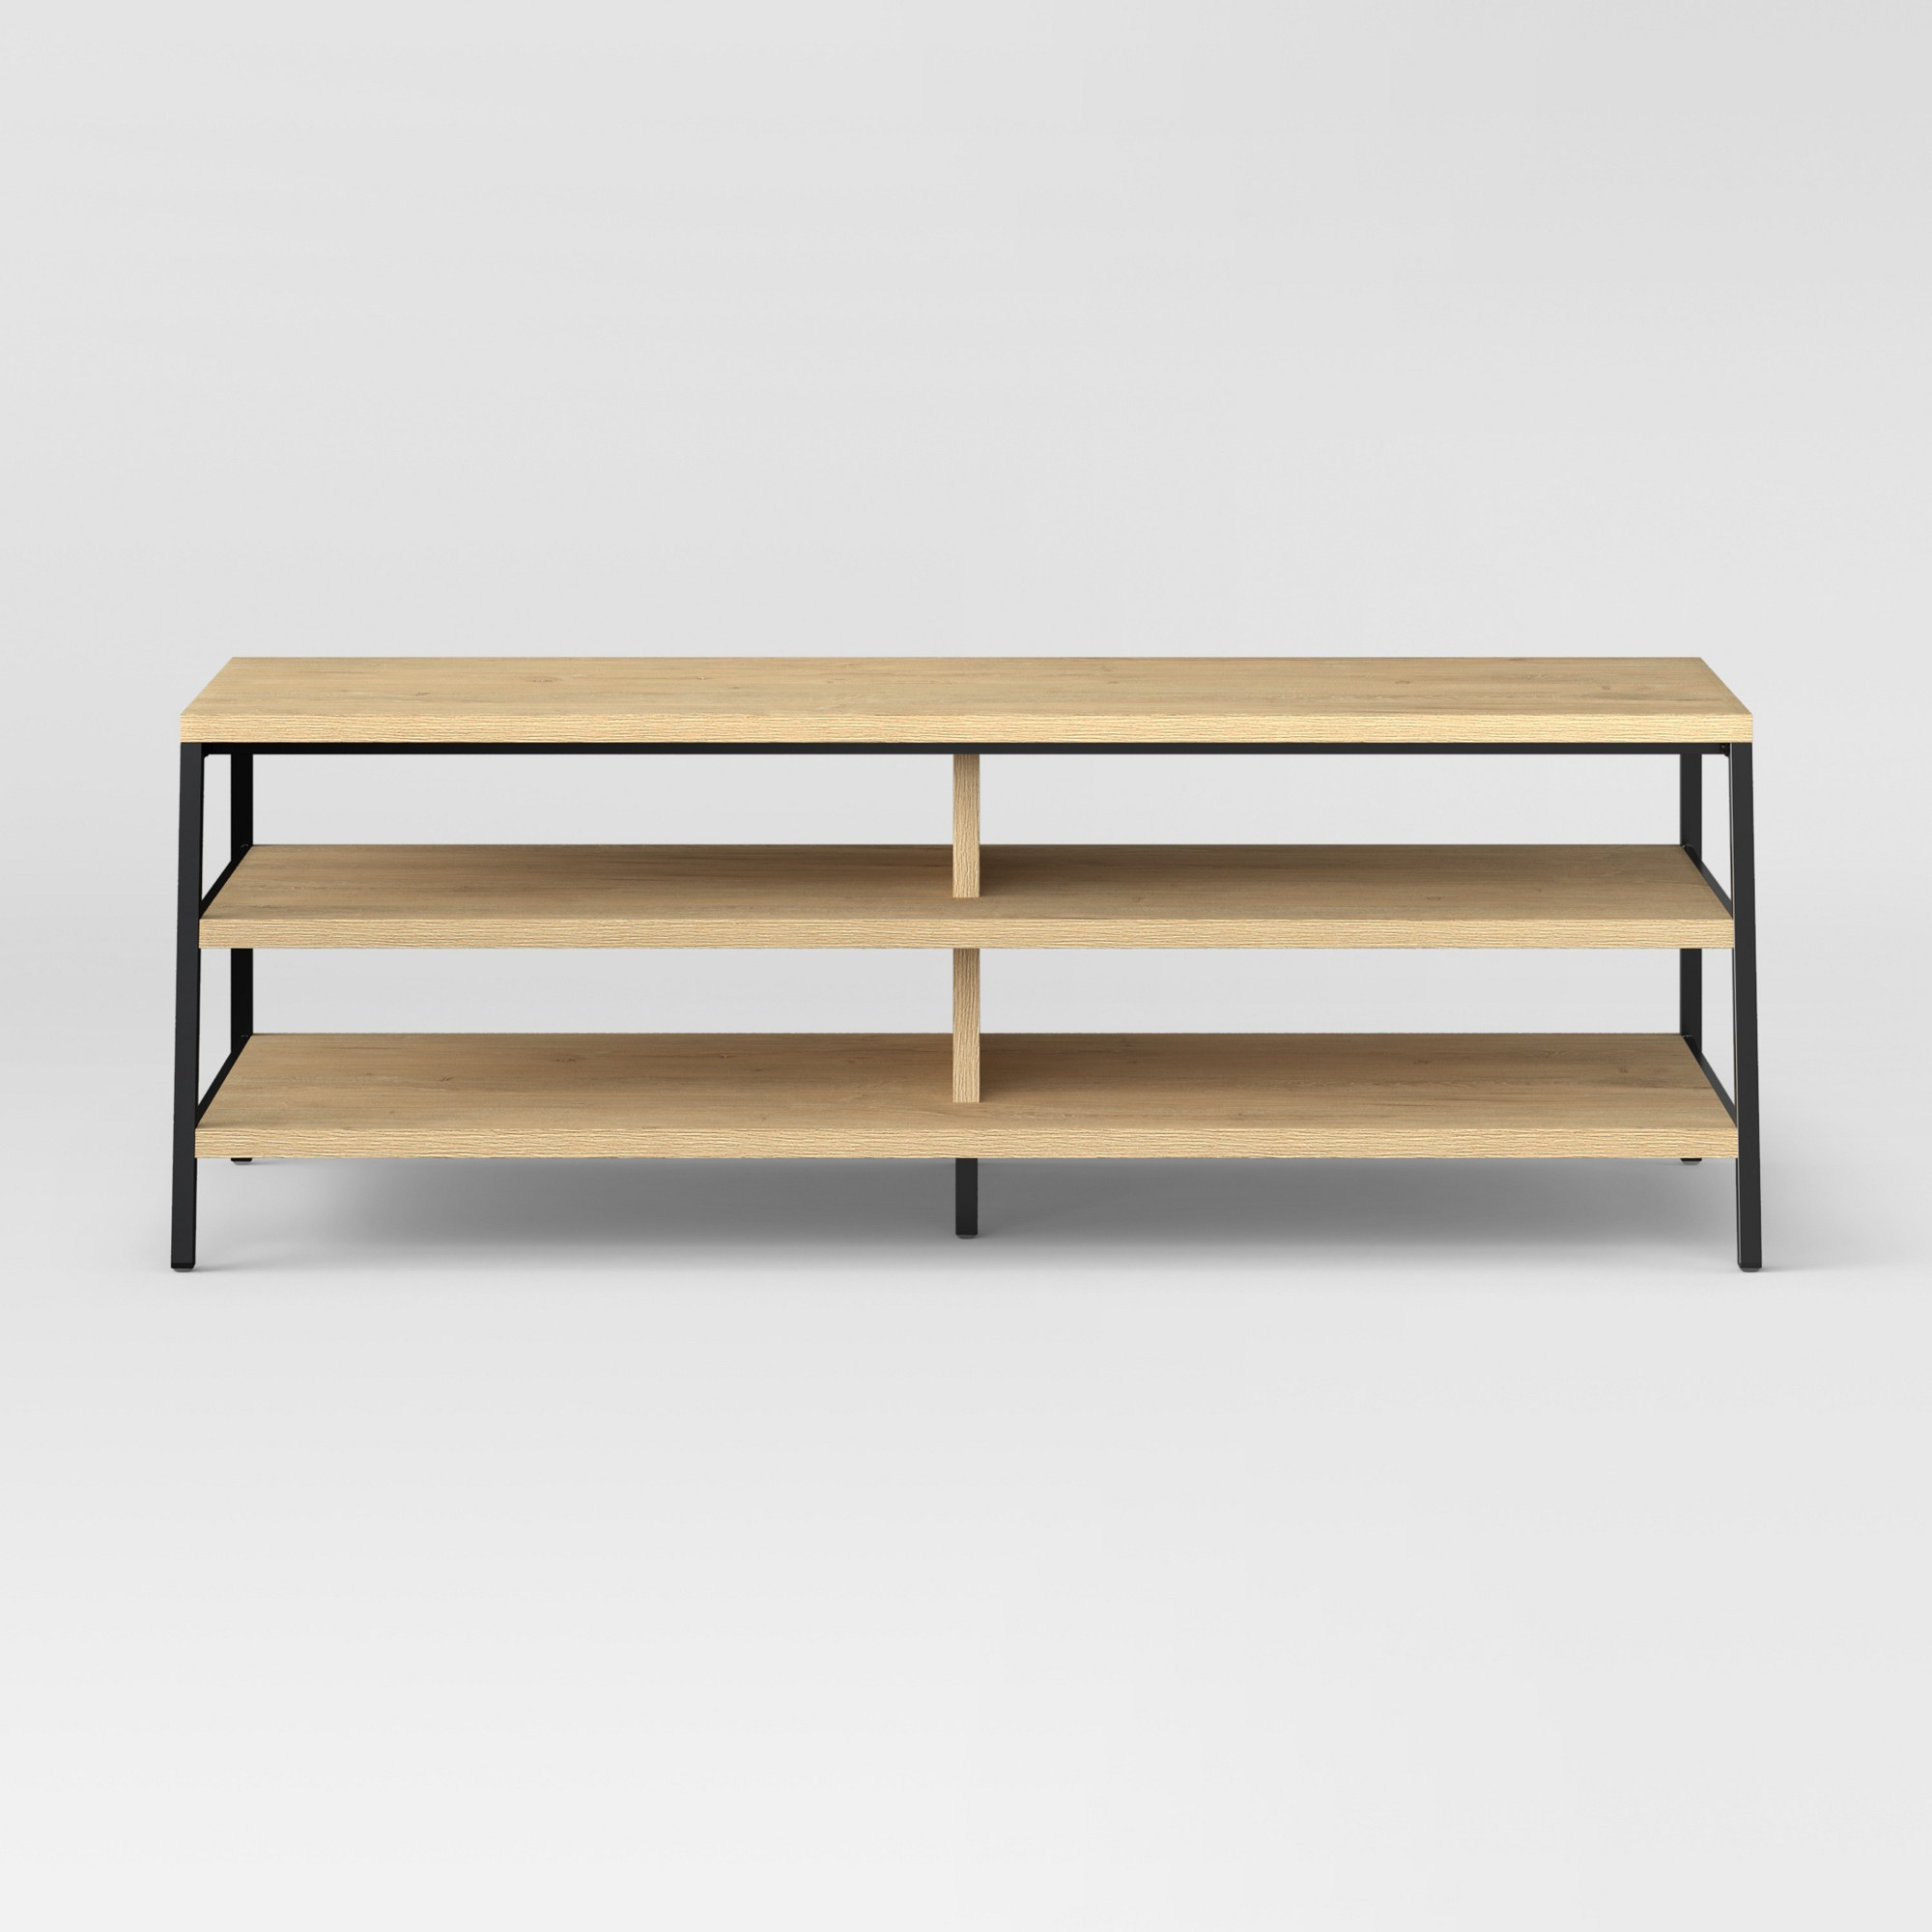 55 Loring Media Stand Vintage Oak - Project 62 | Products | Living with regard to Oak & Brass Stacking Media Console Tables (Image 1 of 30)